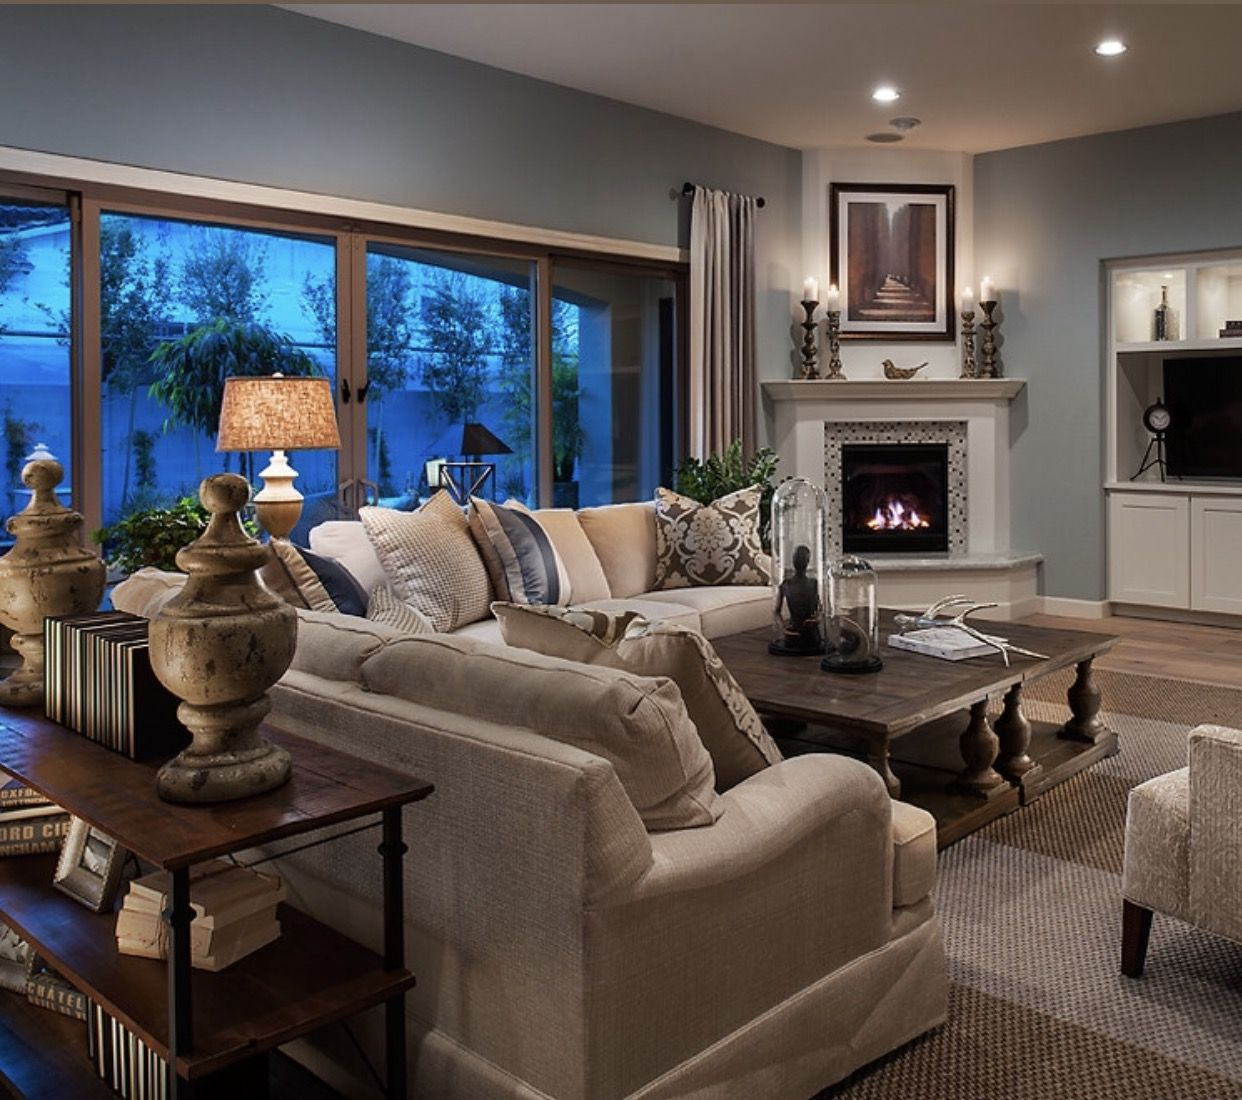 15 Perfect And Cozy Small Living Room Design: Pin By Ryan Tainter-Nutt On Living Room Ideas